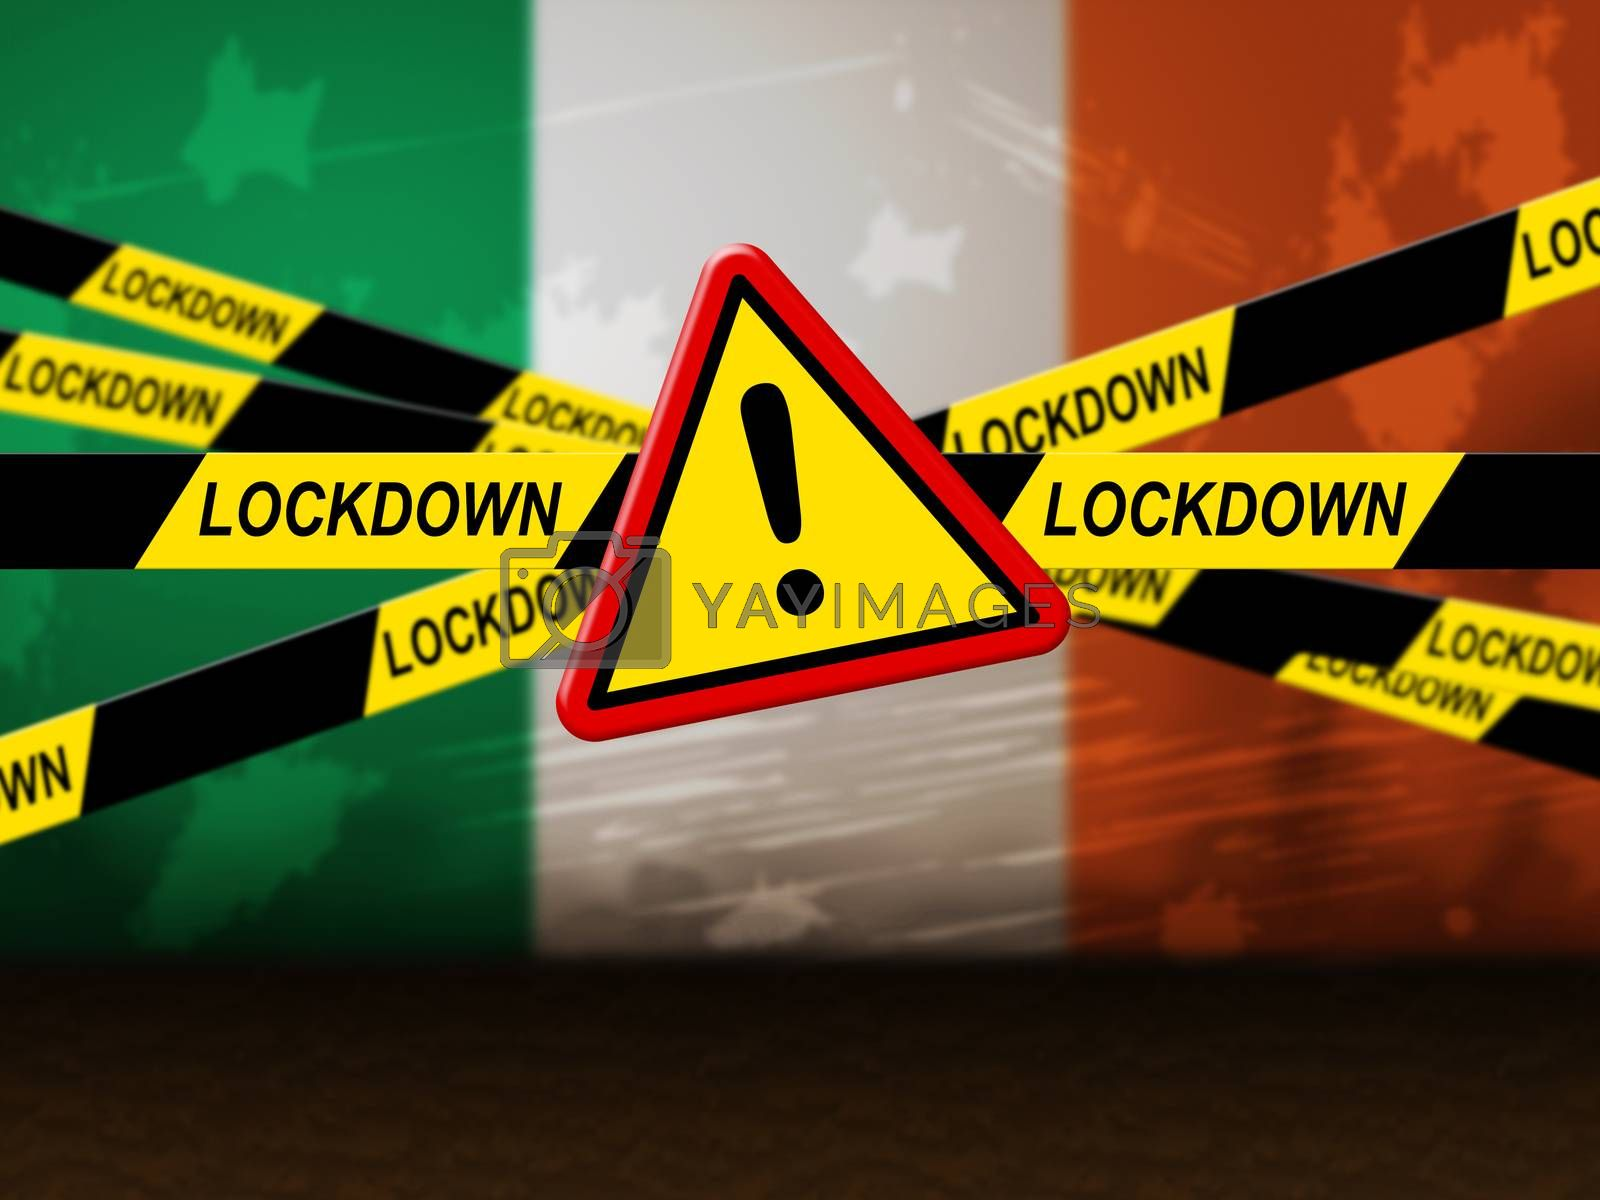 Ireland lockdown preventing ncov epidemic or outbreak. Covid 19 Irish precaution to isolate disease infection - 3d Illustration